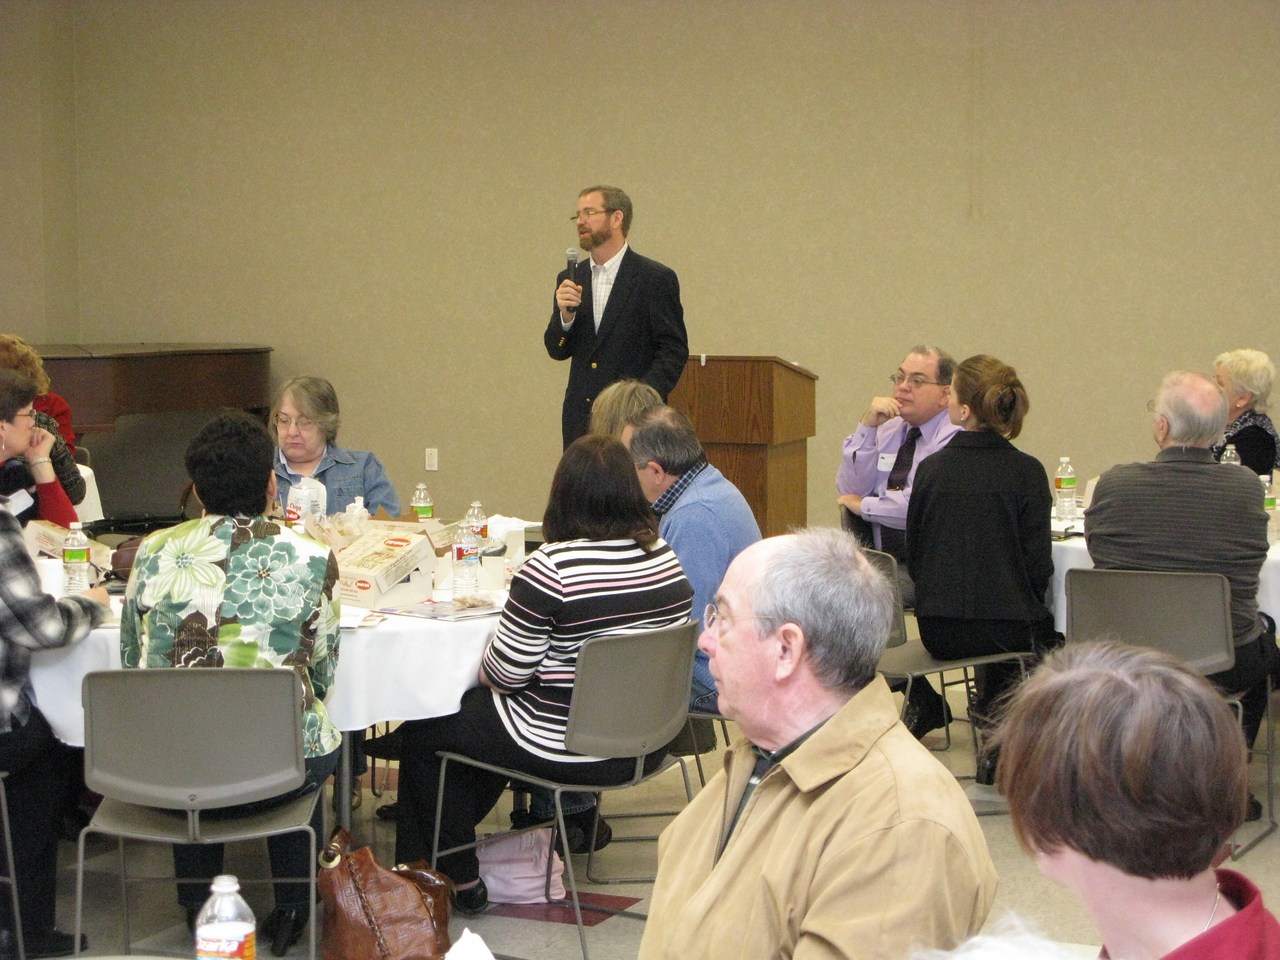 Jeff discusses how to start, or expand, Bible classes at a special luncheon for leaders.